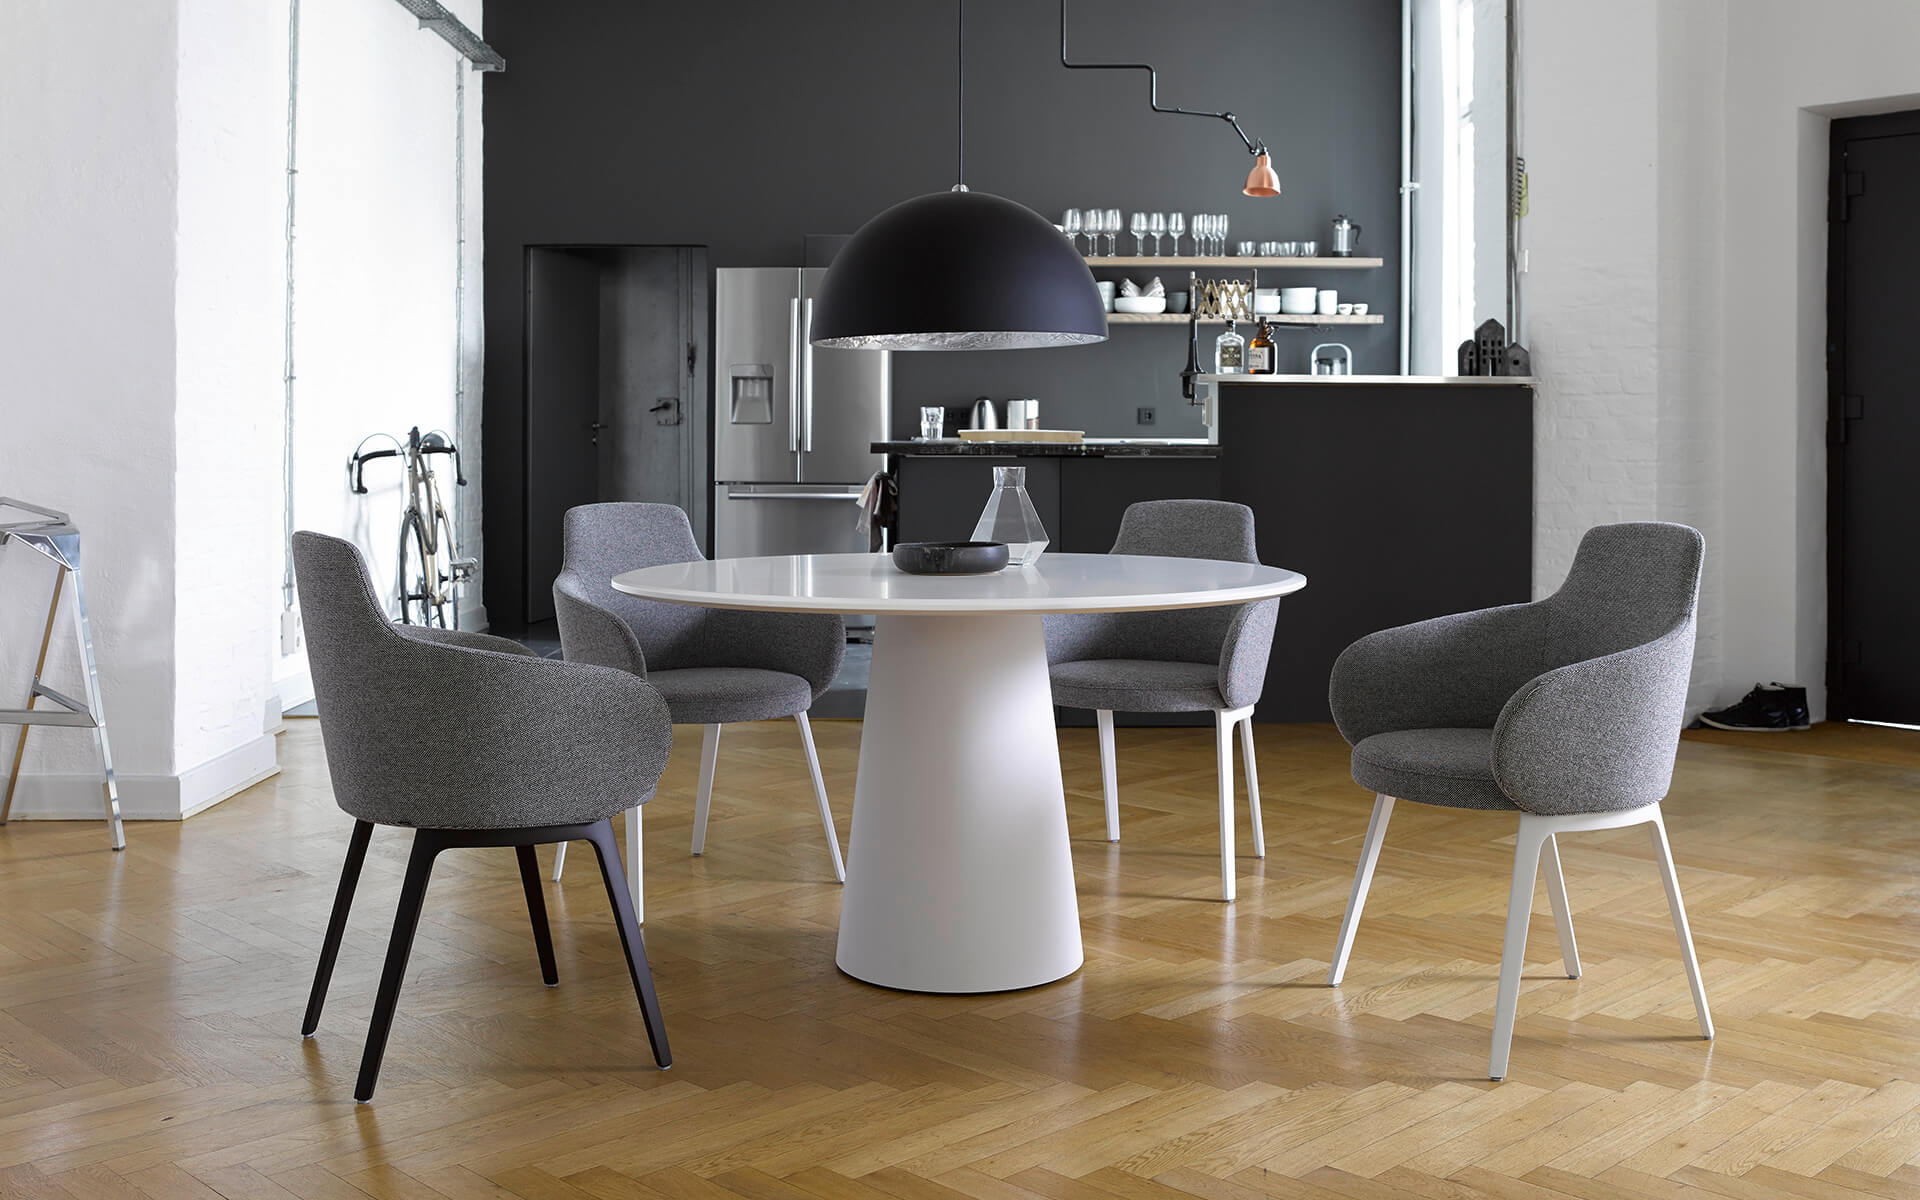 real good chair williams sonoma chairs conic table: cor